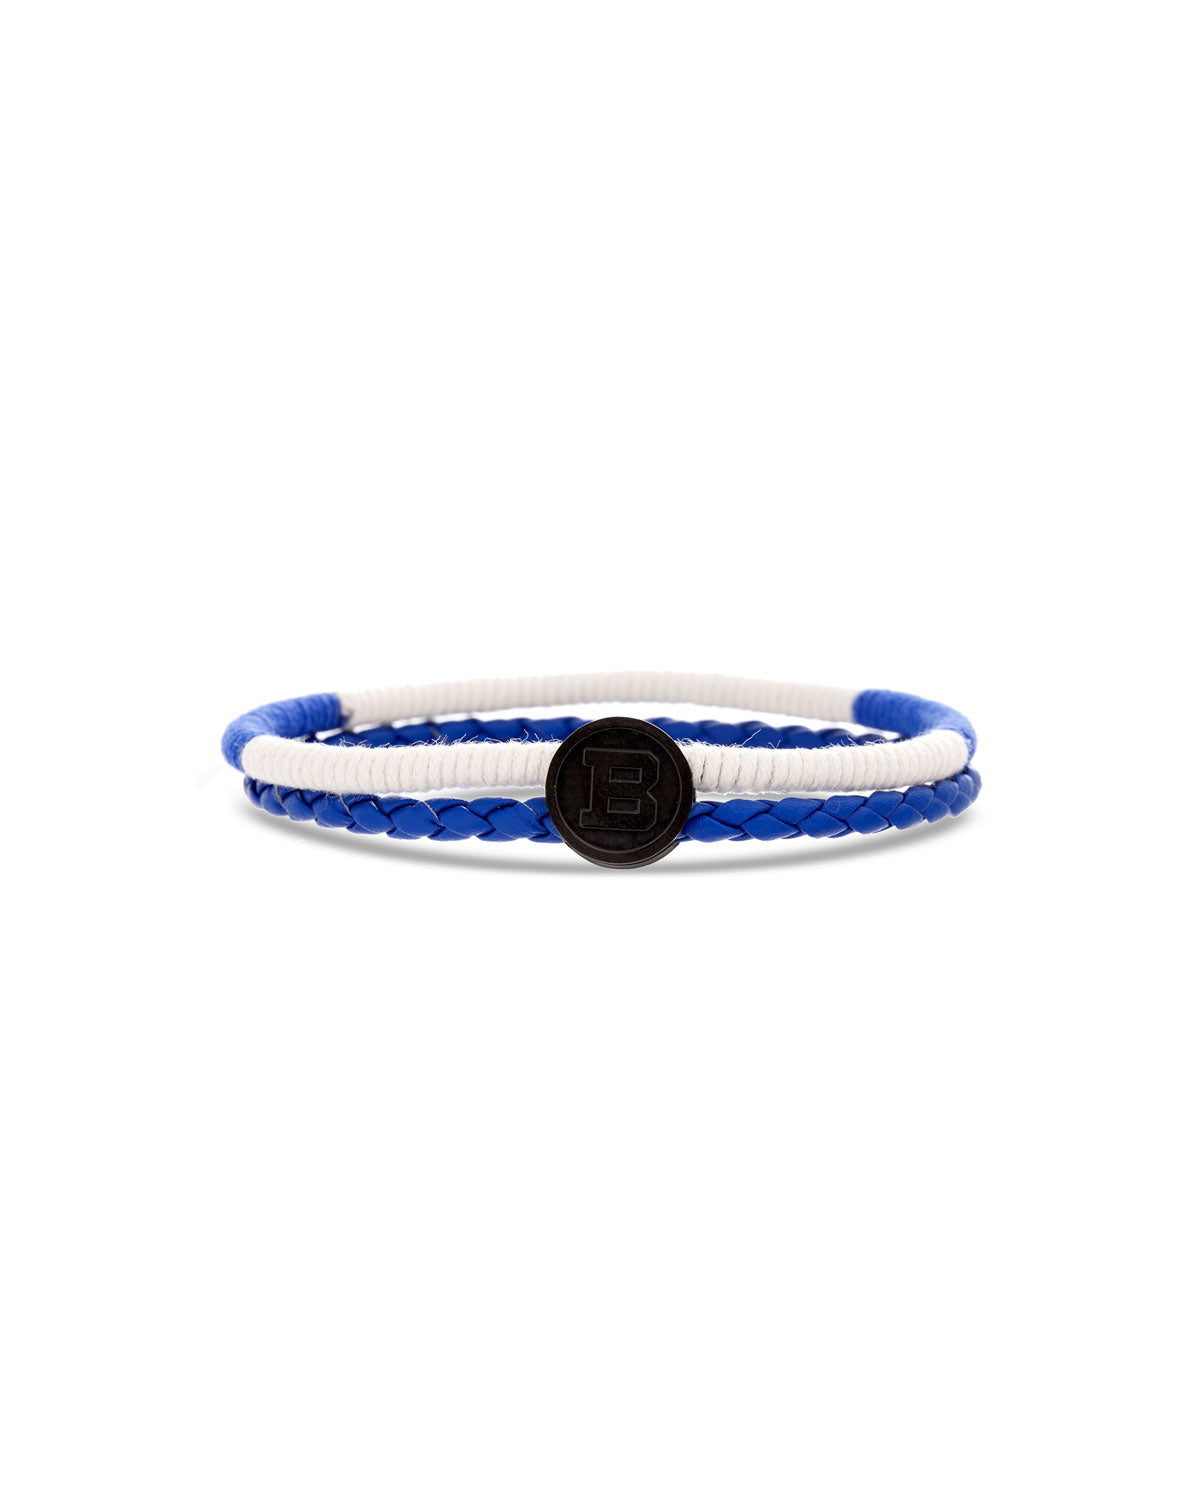 Blue Braided Leather, Blue & White Cord Bracelet